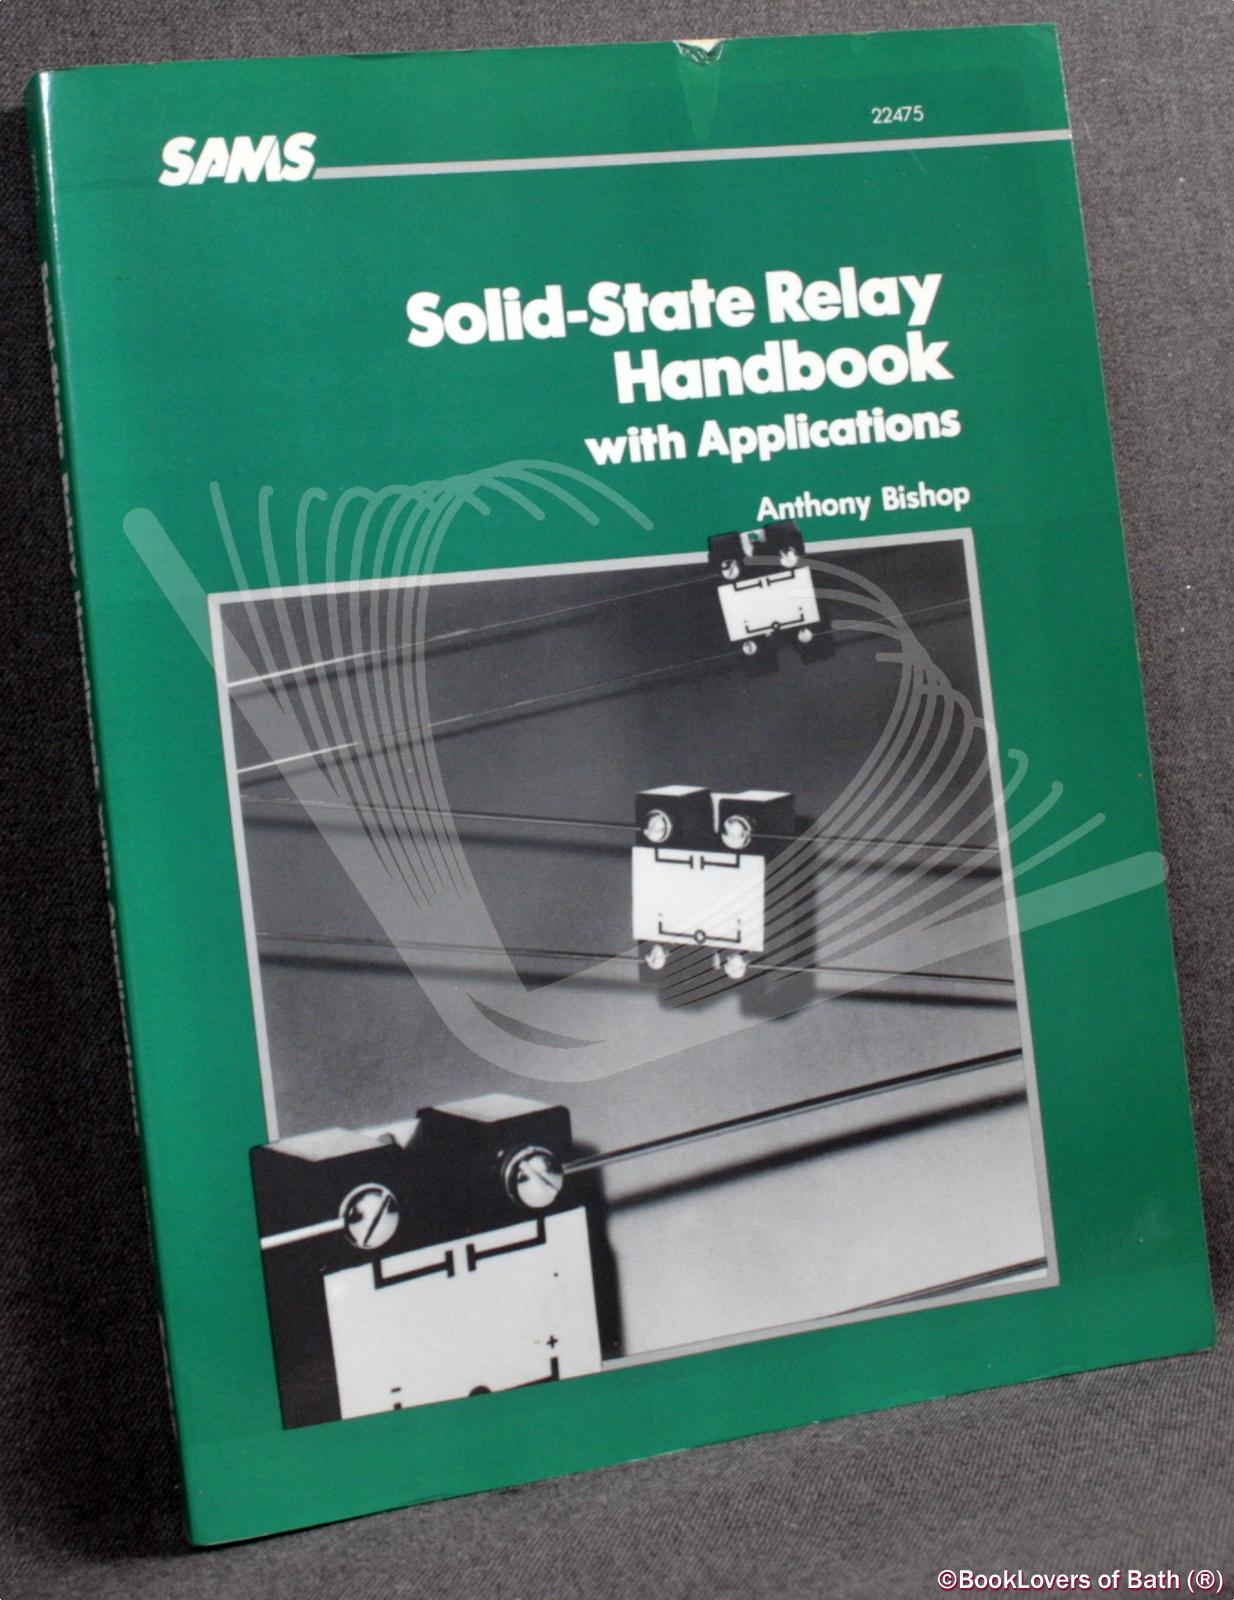 Solid-state Relay Handbook with Applications - Anthony Bishop